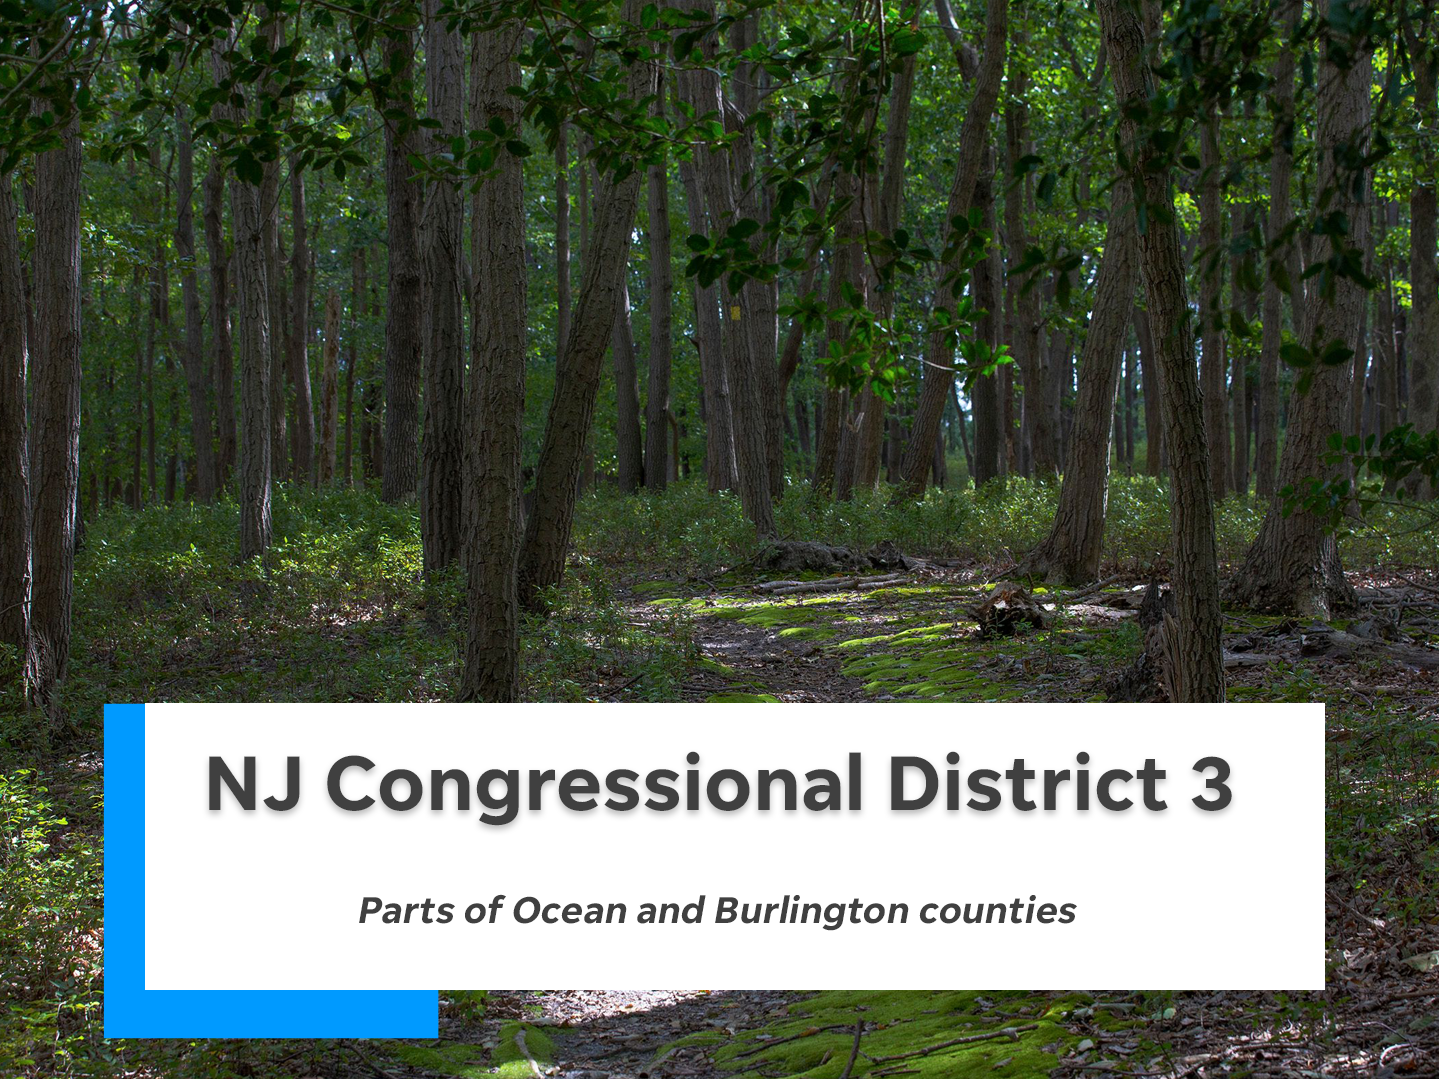 NJ's third congressional district is comprised of parts of Ocean and Burlington counties.